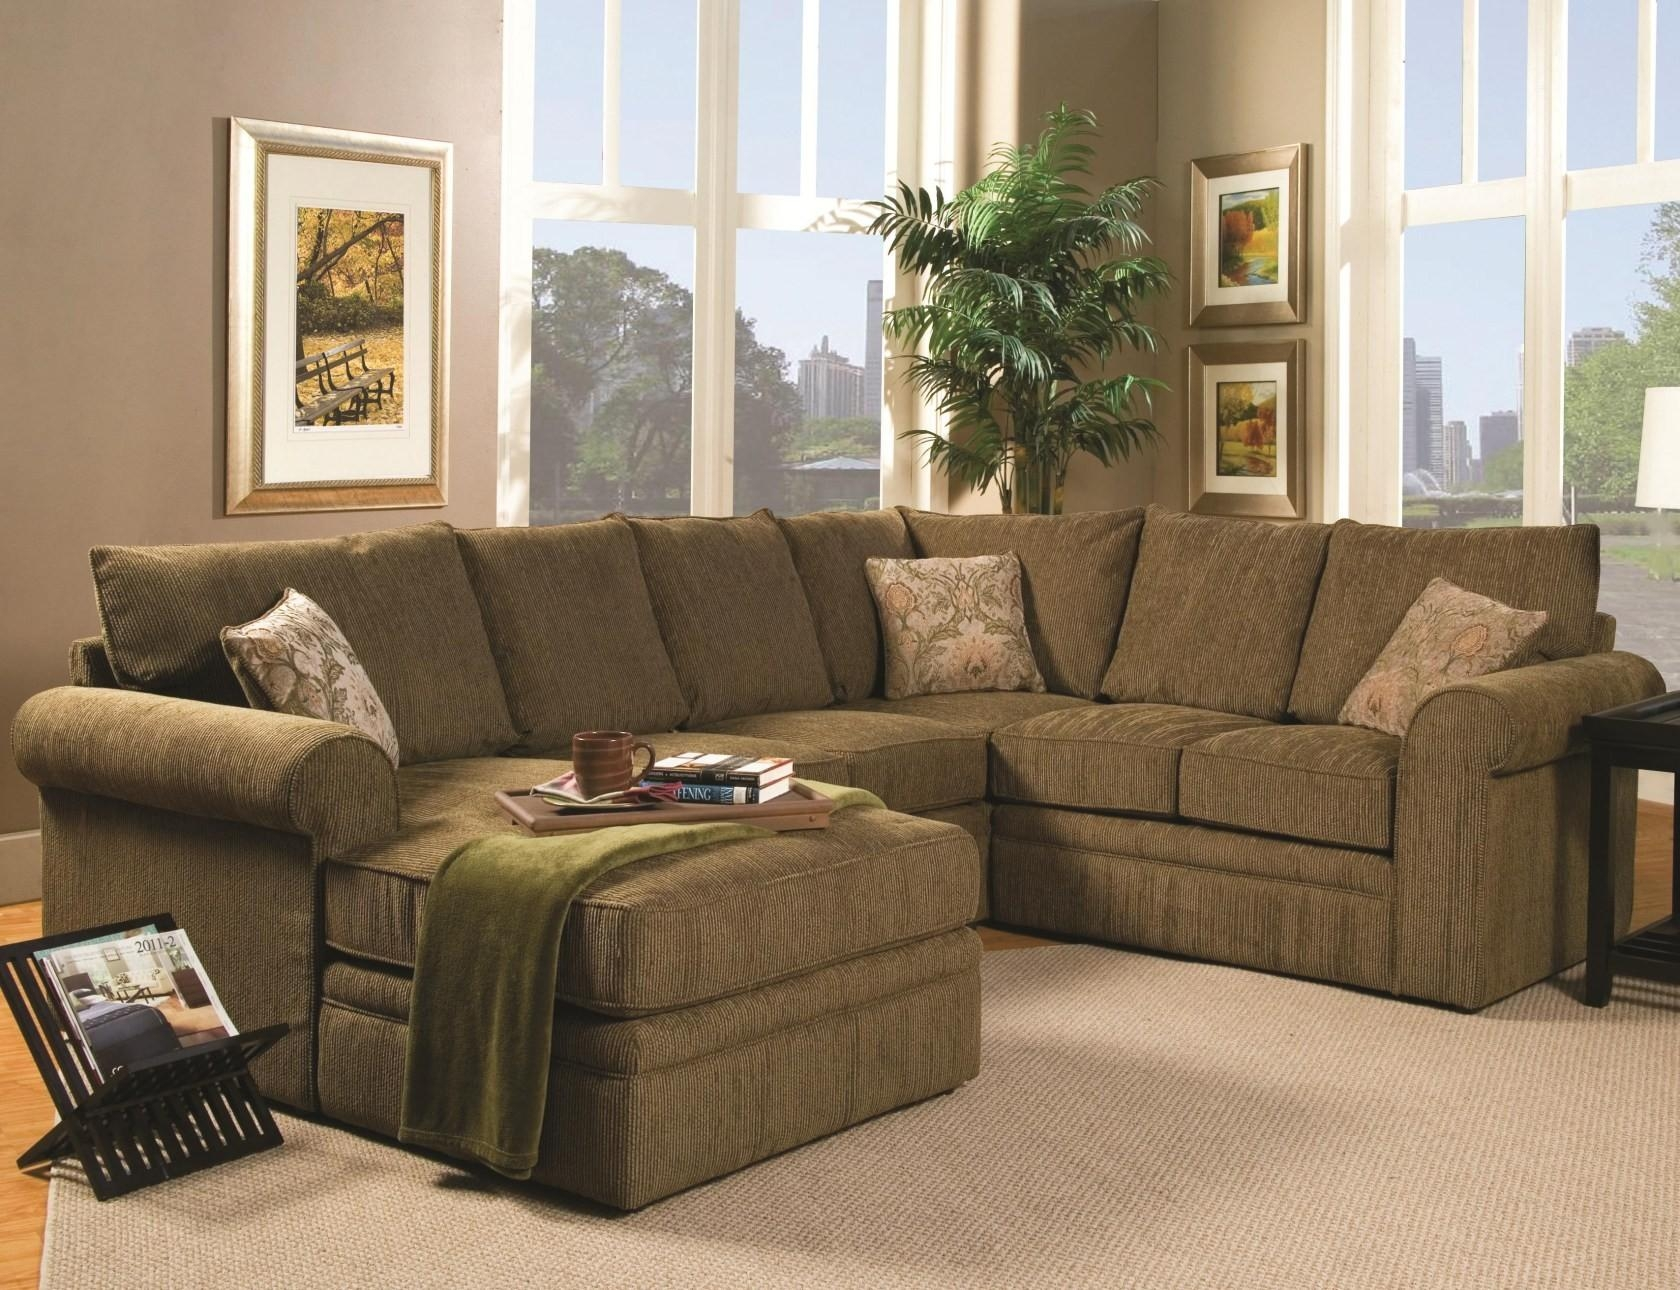 The Big Room For U Shaped Leather Sectional Sofa : S3Net Pertaining To Green Sectional Sofa With Chaise (View 11 of 15)